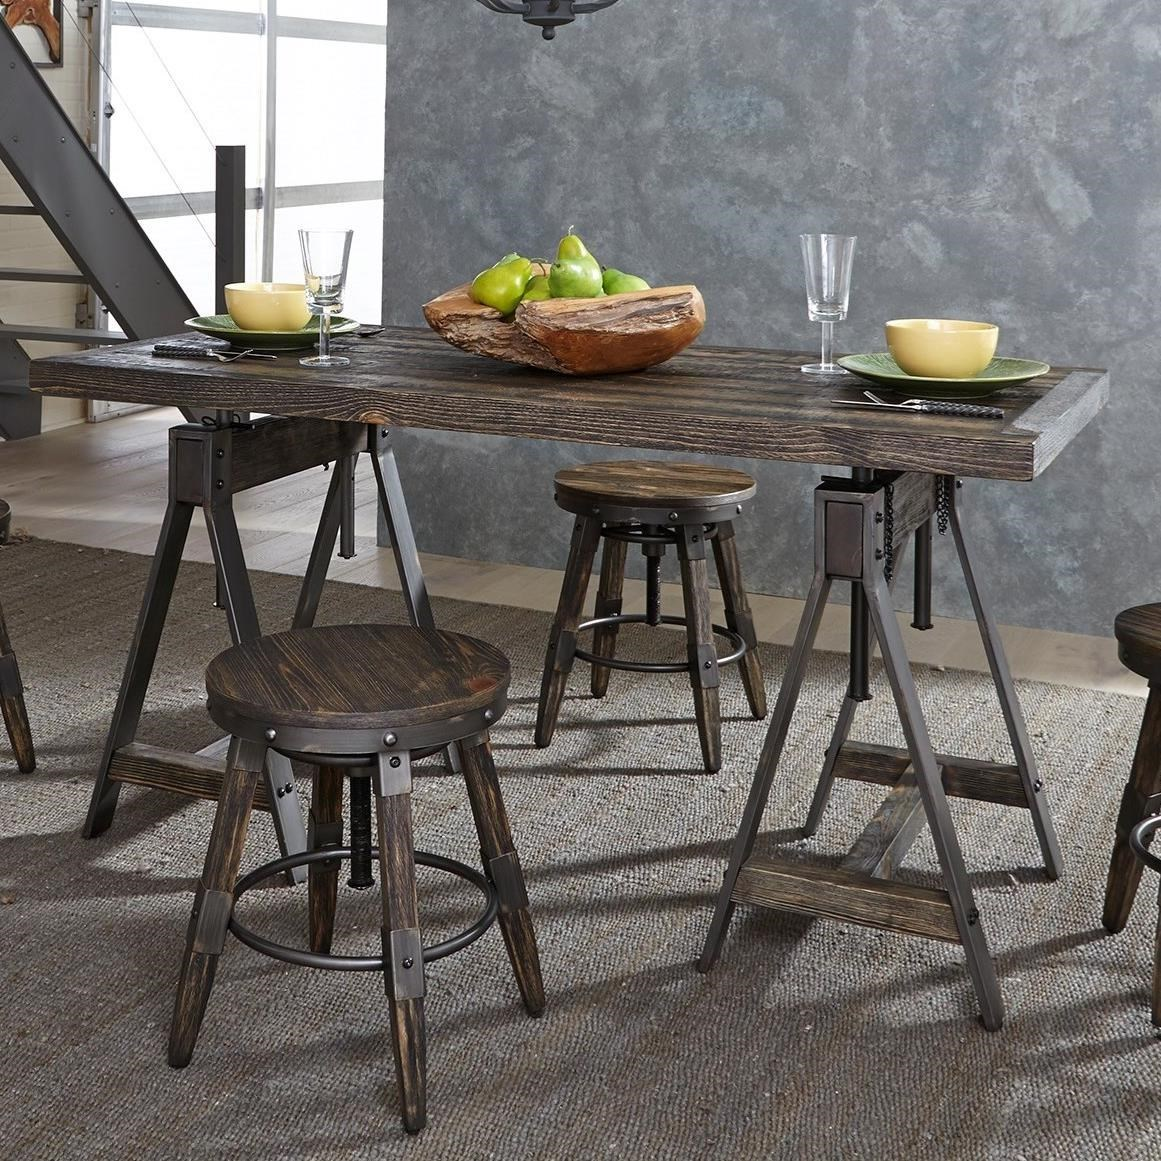 liberty furniture pineville 170 t3060 industrial adjustable height rectangular table with sawhorse pedestals   gill brothers furniture   kitchen tables liberty furniture pineville 170 t3060 industrial adjustable height      rh   gillbros com